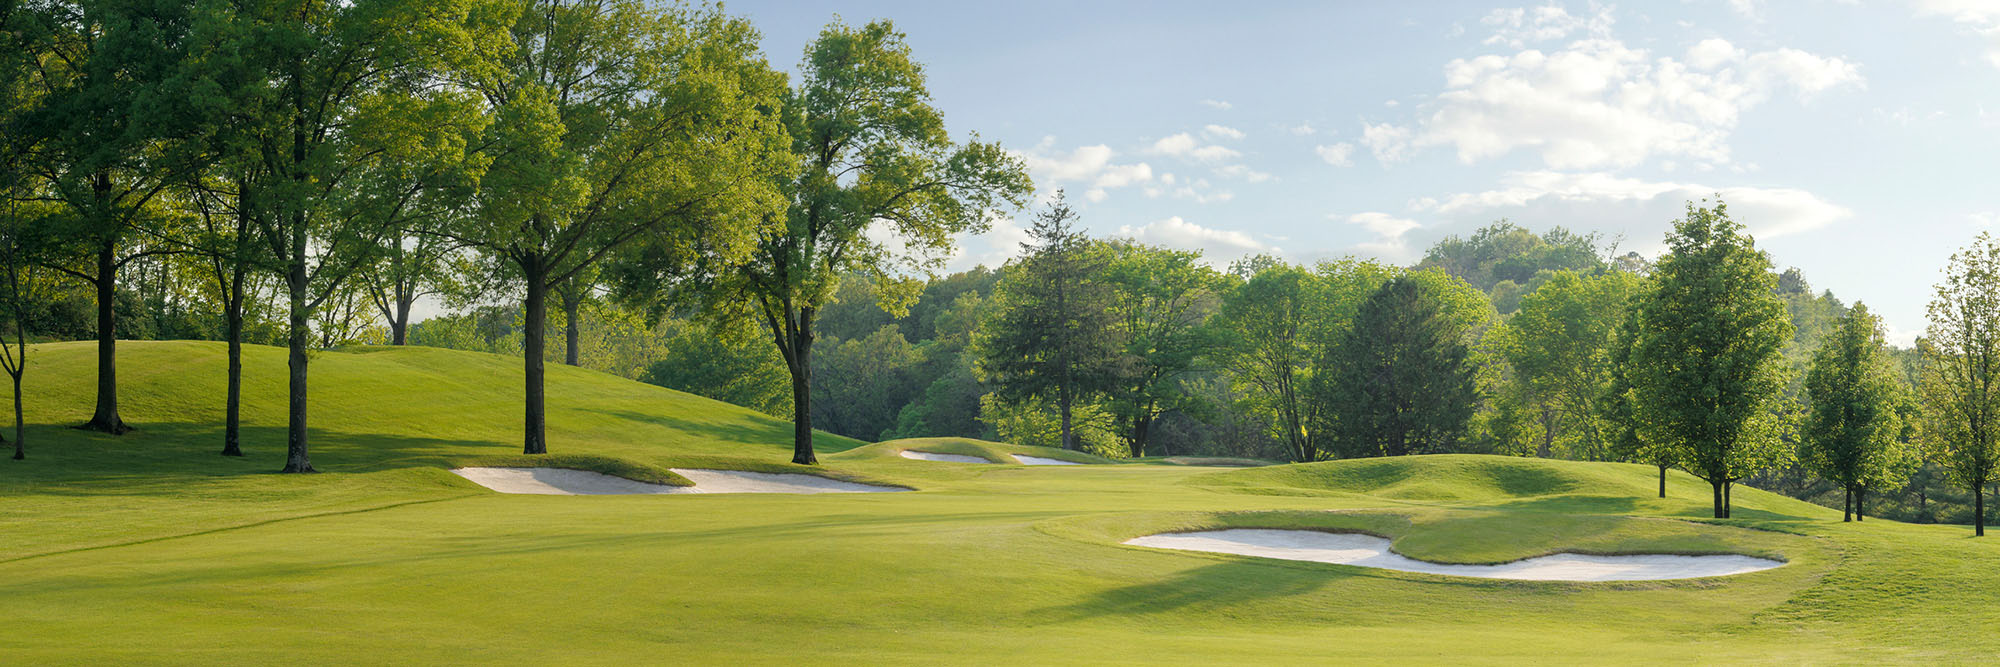 Golf Course Image - Forest Hills Country Club No. 14